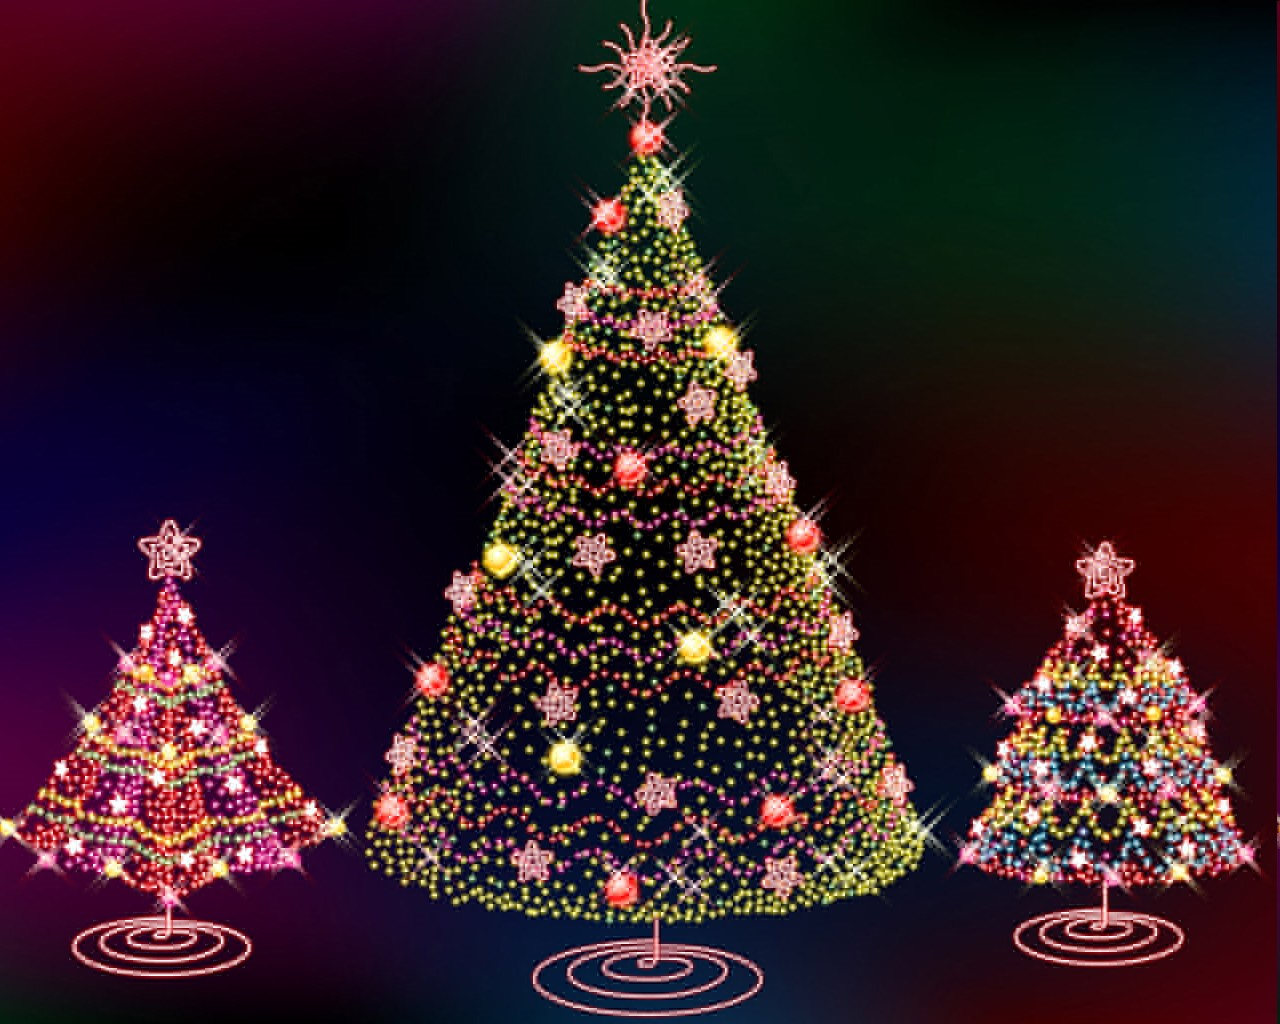 Animated Christmas Clipart Images.